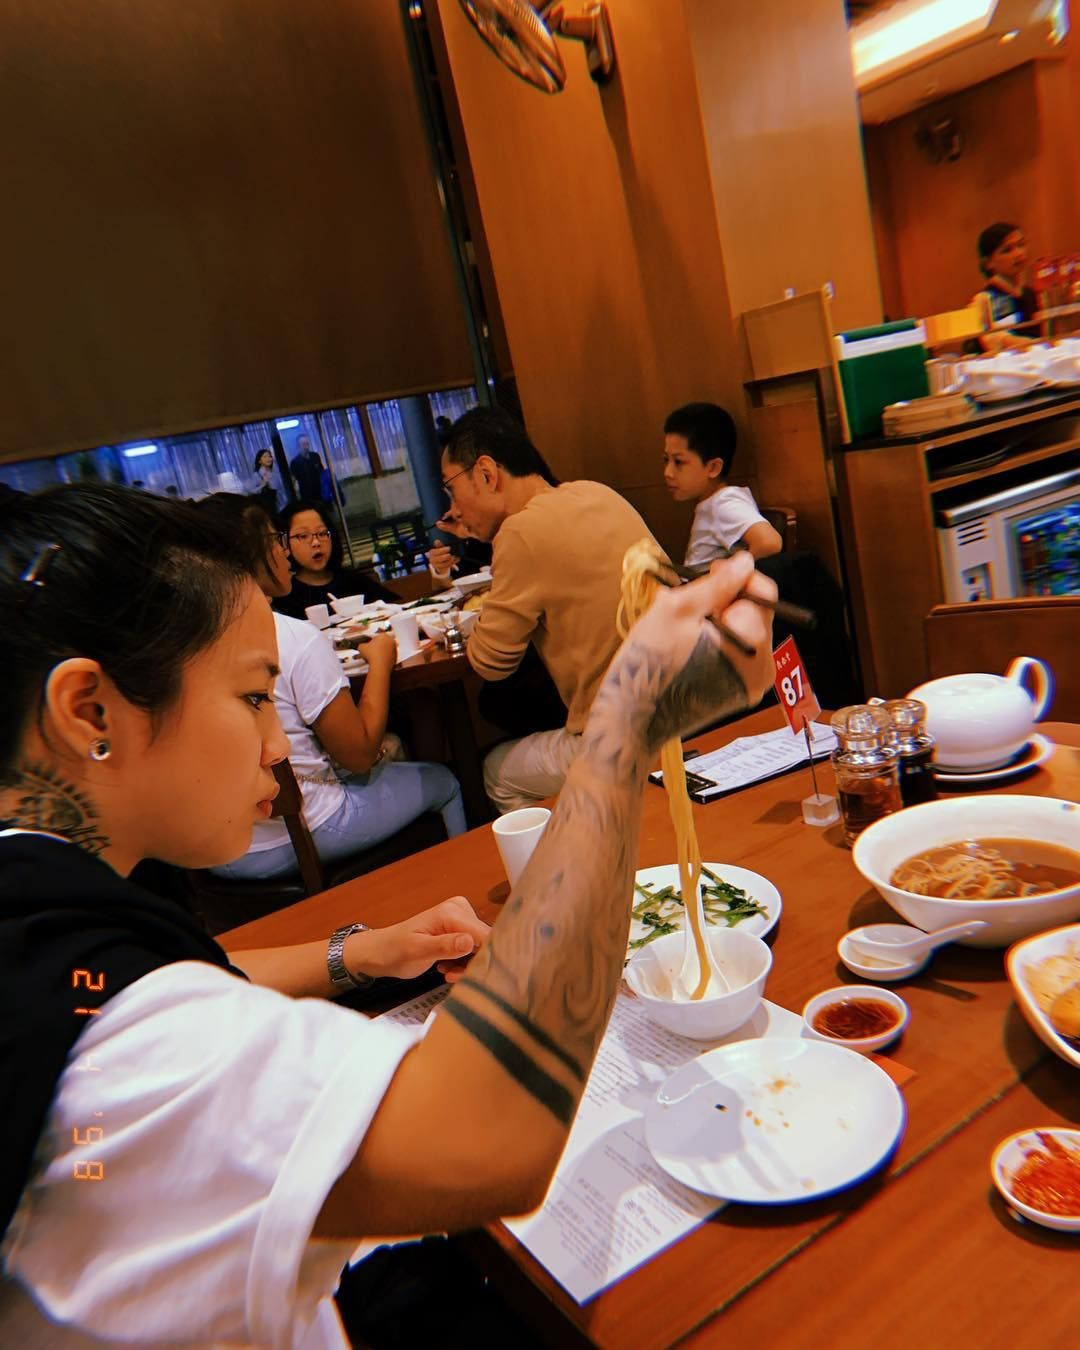 [New] The 10 Best Food (with Pictures) -  D T F  Always  #dintaifung #noodles #sendnoods #sendnoodles #hongkongnoodles #hongkong #food #hongkongfood